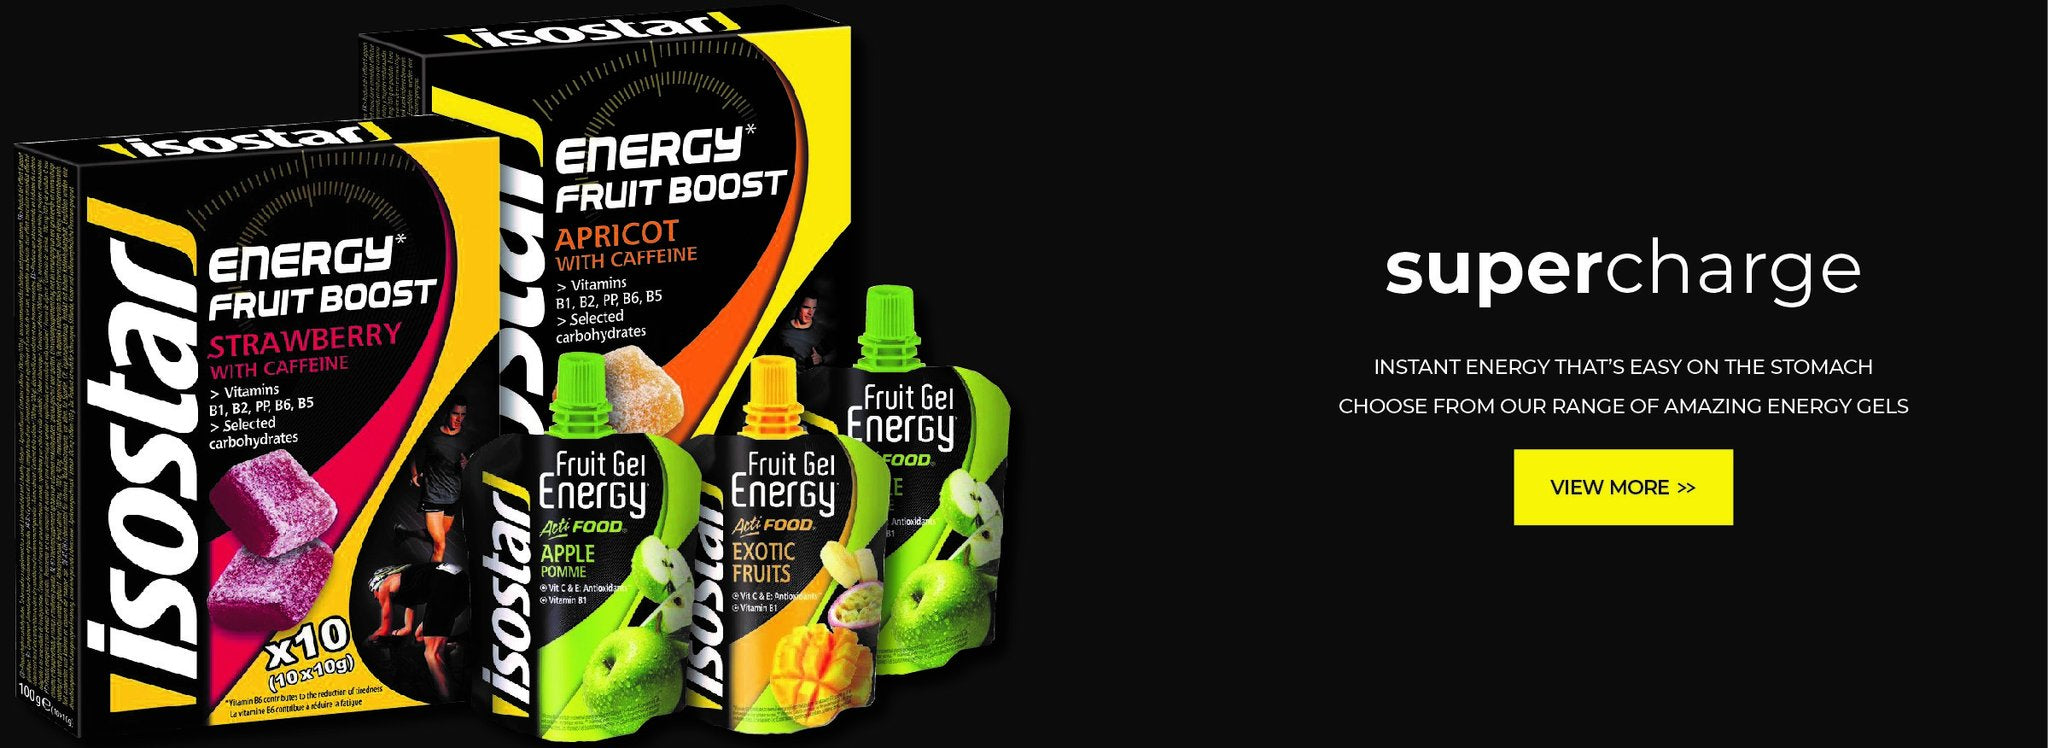 Isostar South Africa Instant Energy Gels